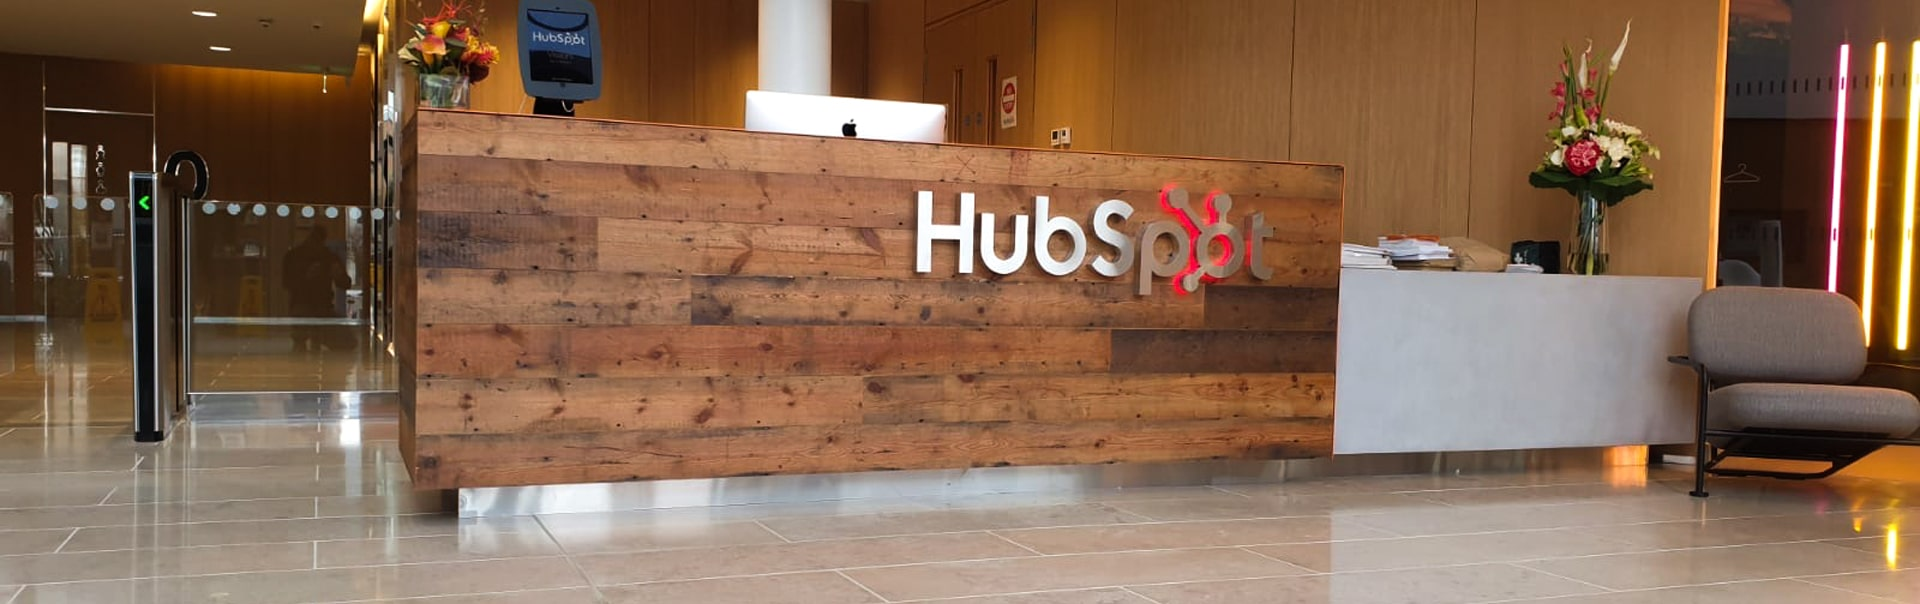 Hubspot Reception | Lobby Signs